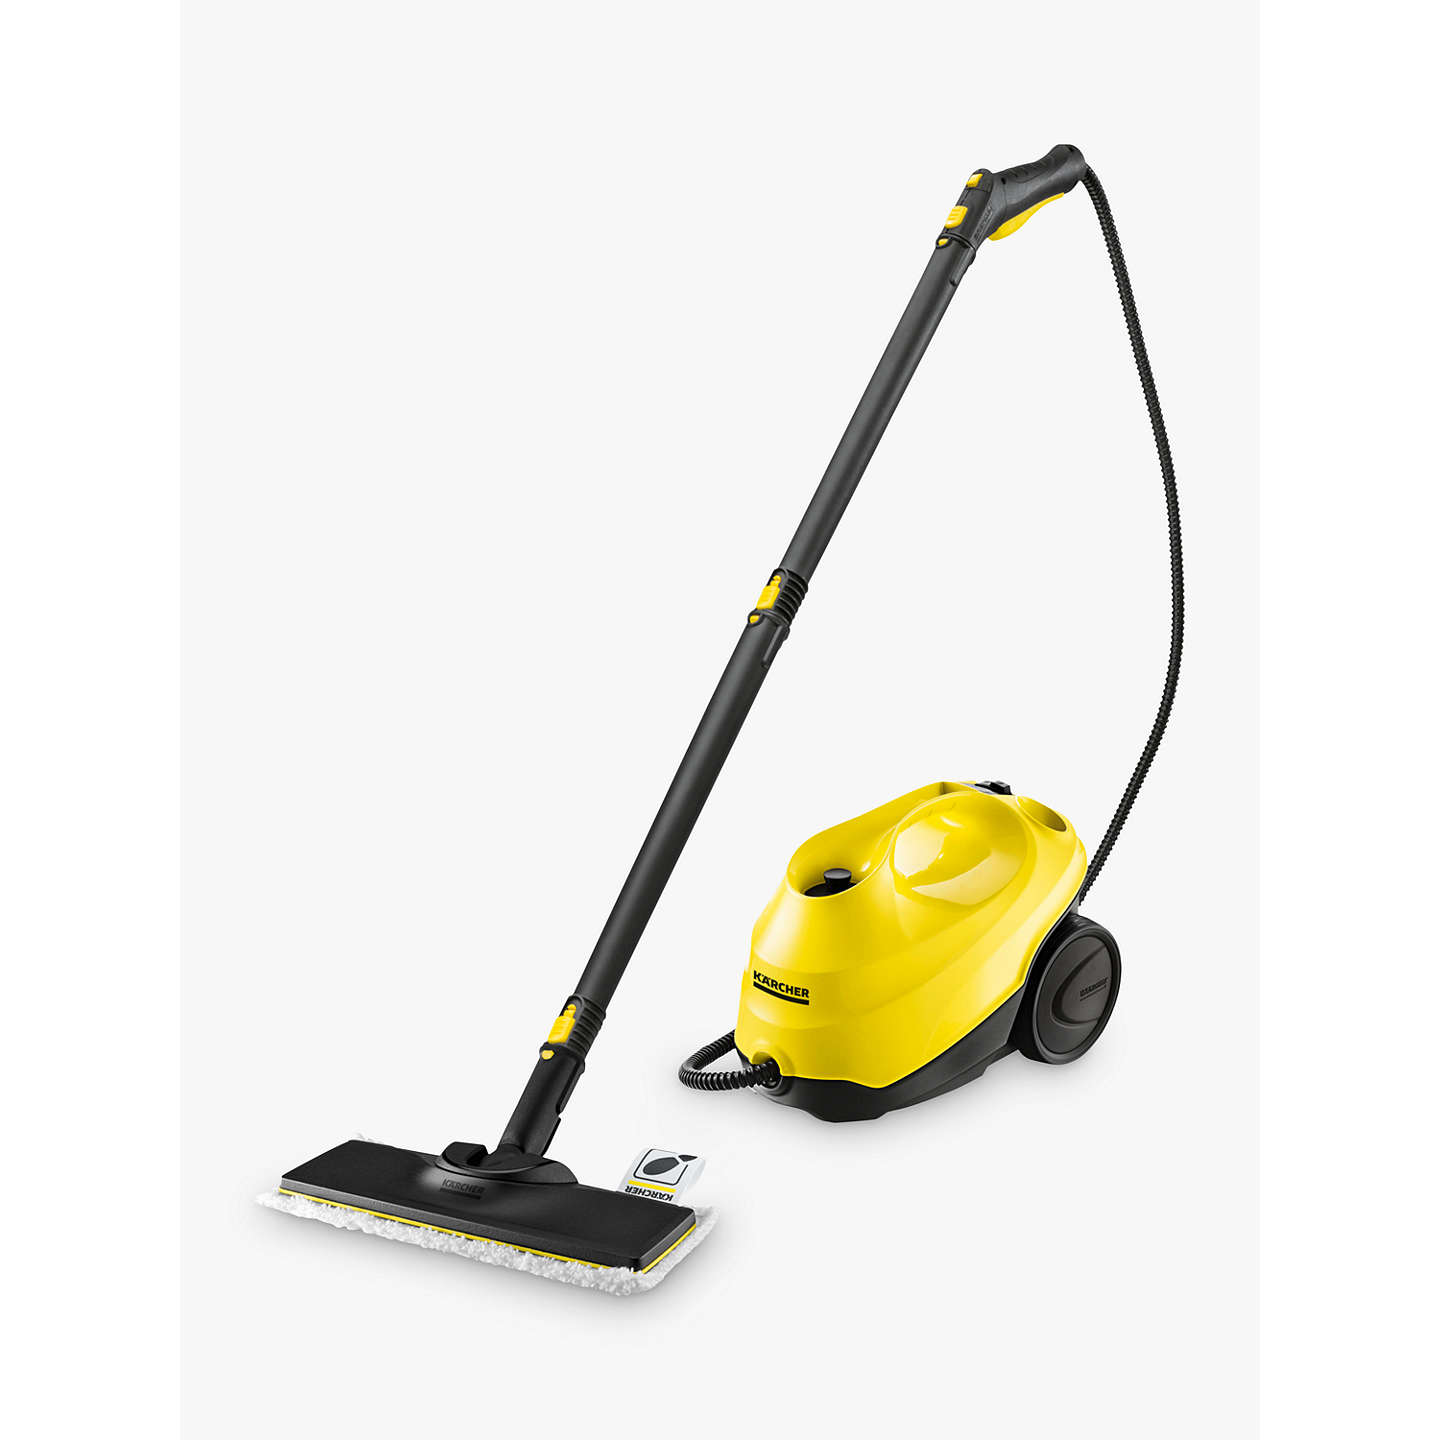 k rcher sc3 easyfix steam cleaner at john lewis. Black Bedroom Furniture Sets. Home Design Ideas